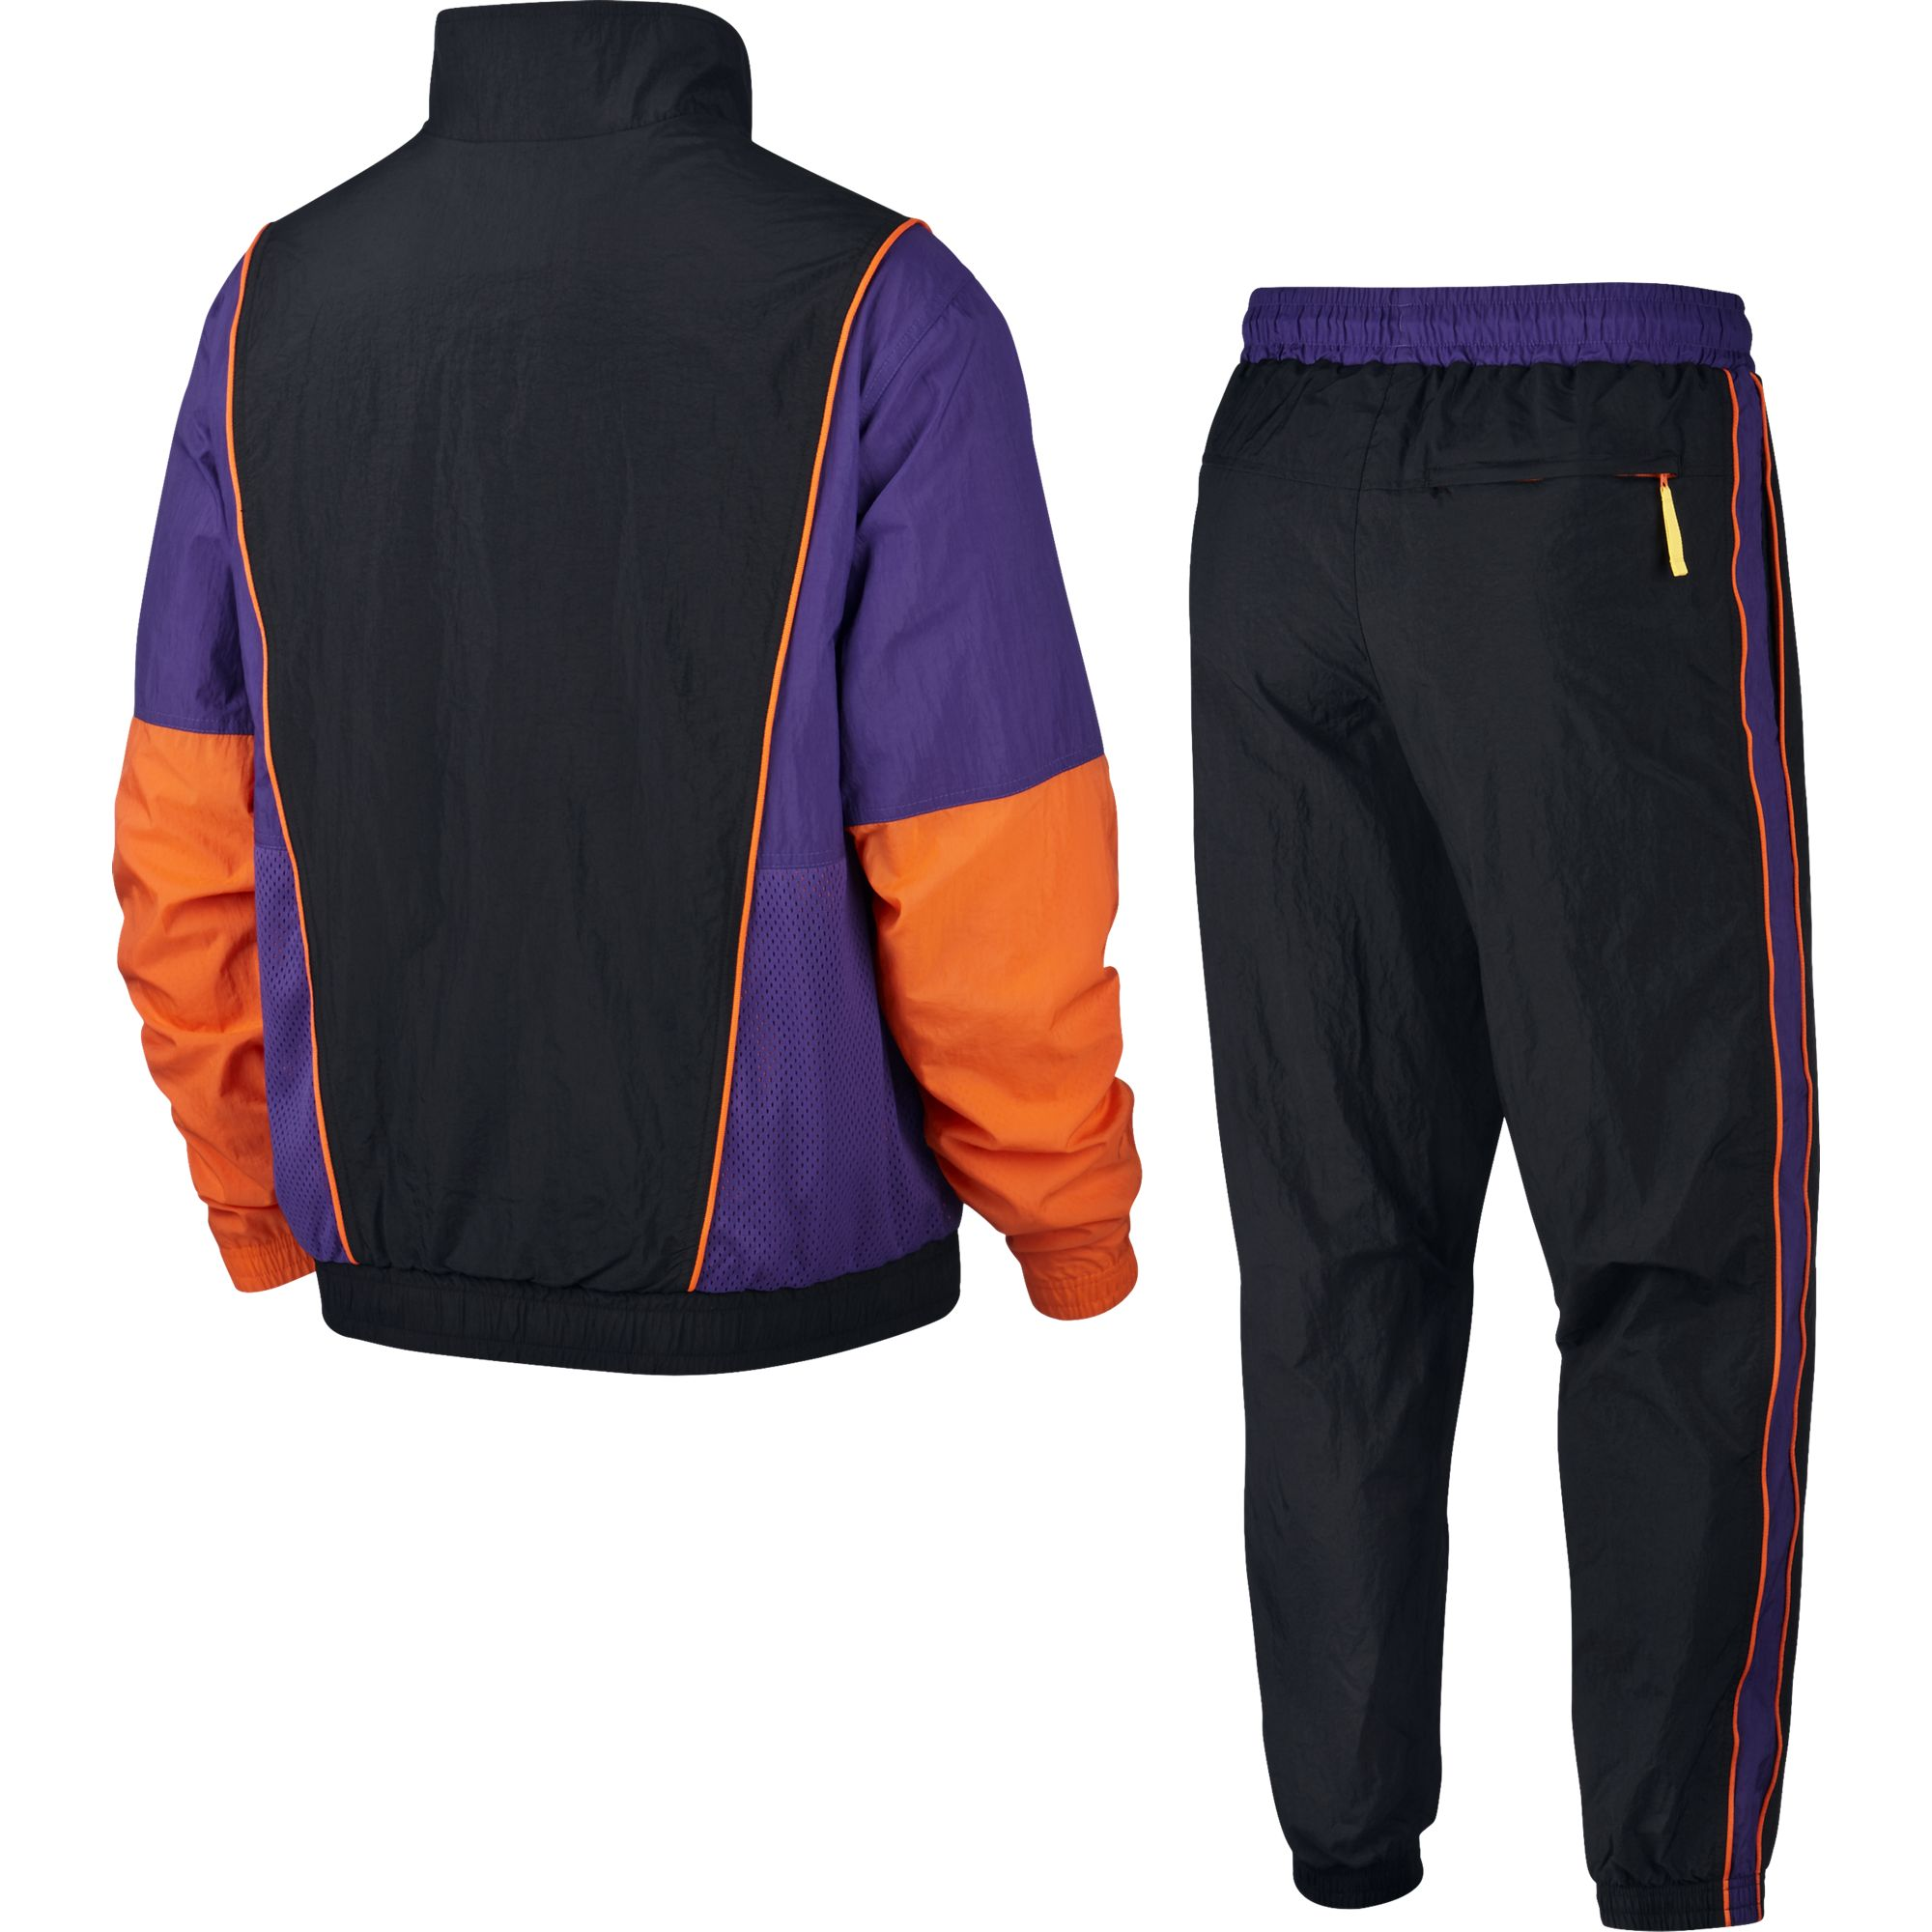 Nike Basketball Throwback Woven Tracksuit - Black/Field Purple/Brilliant Orange/White